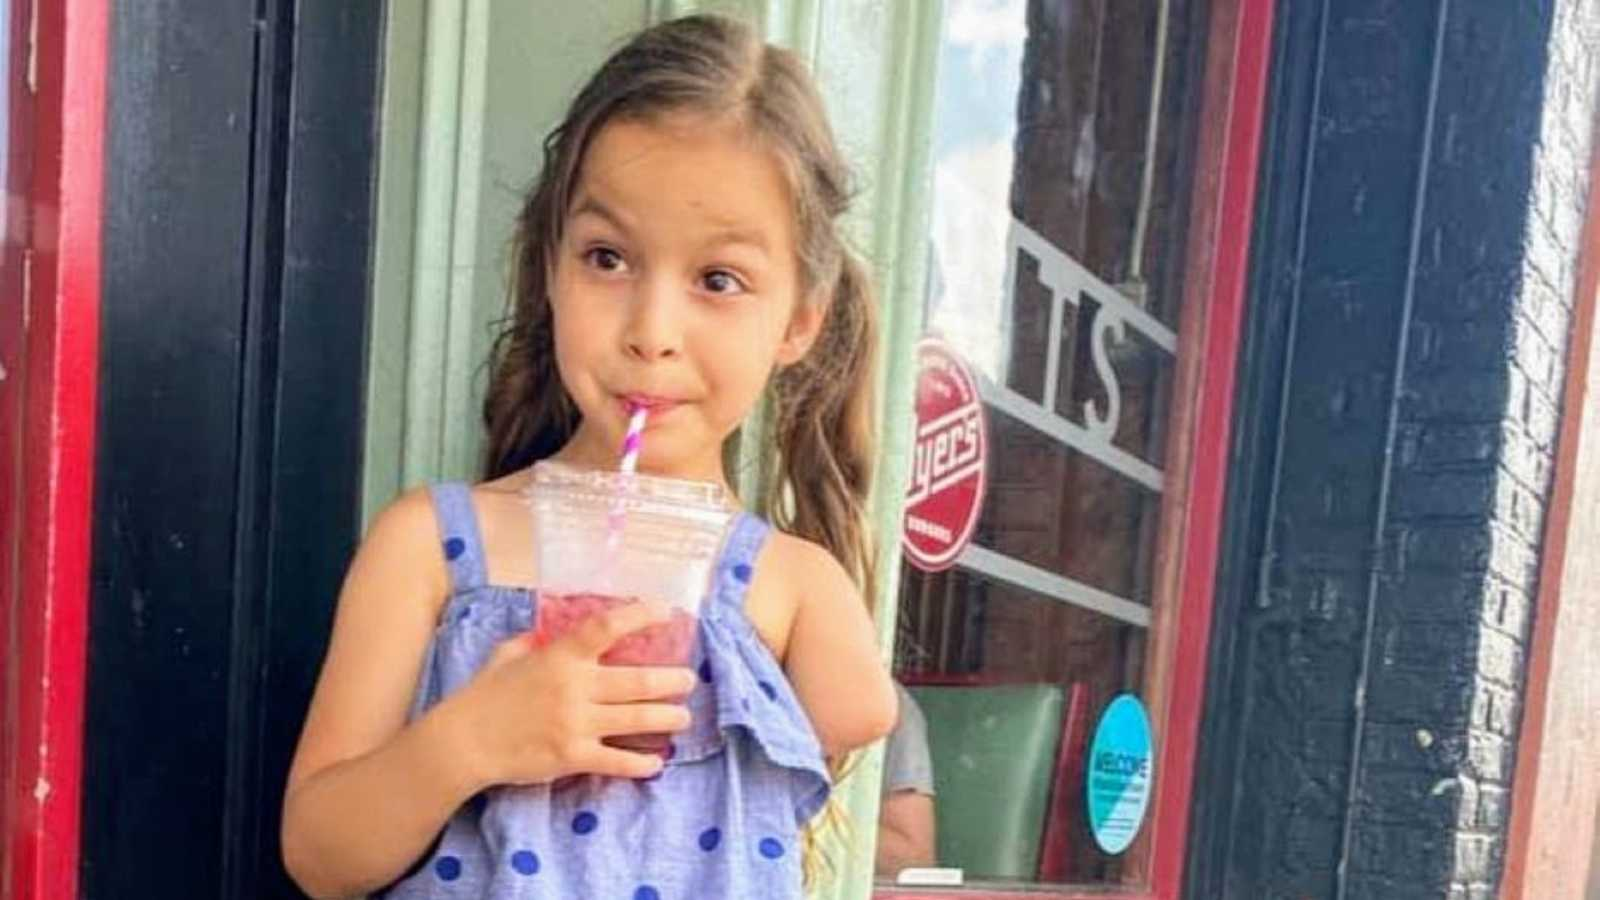 Sassy little girl with a limb difference poses with her smoothie while her mom takes a photo